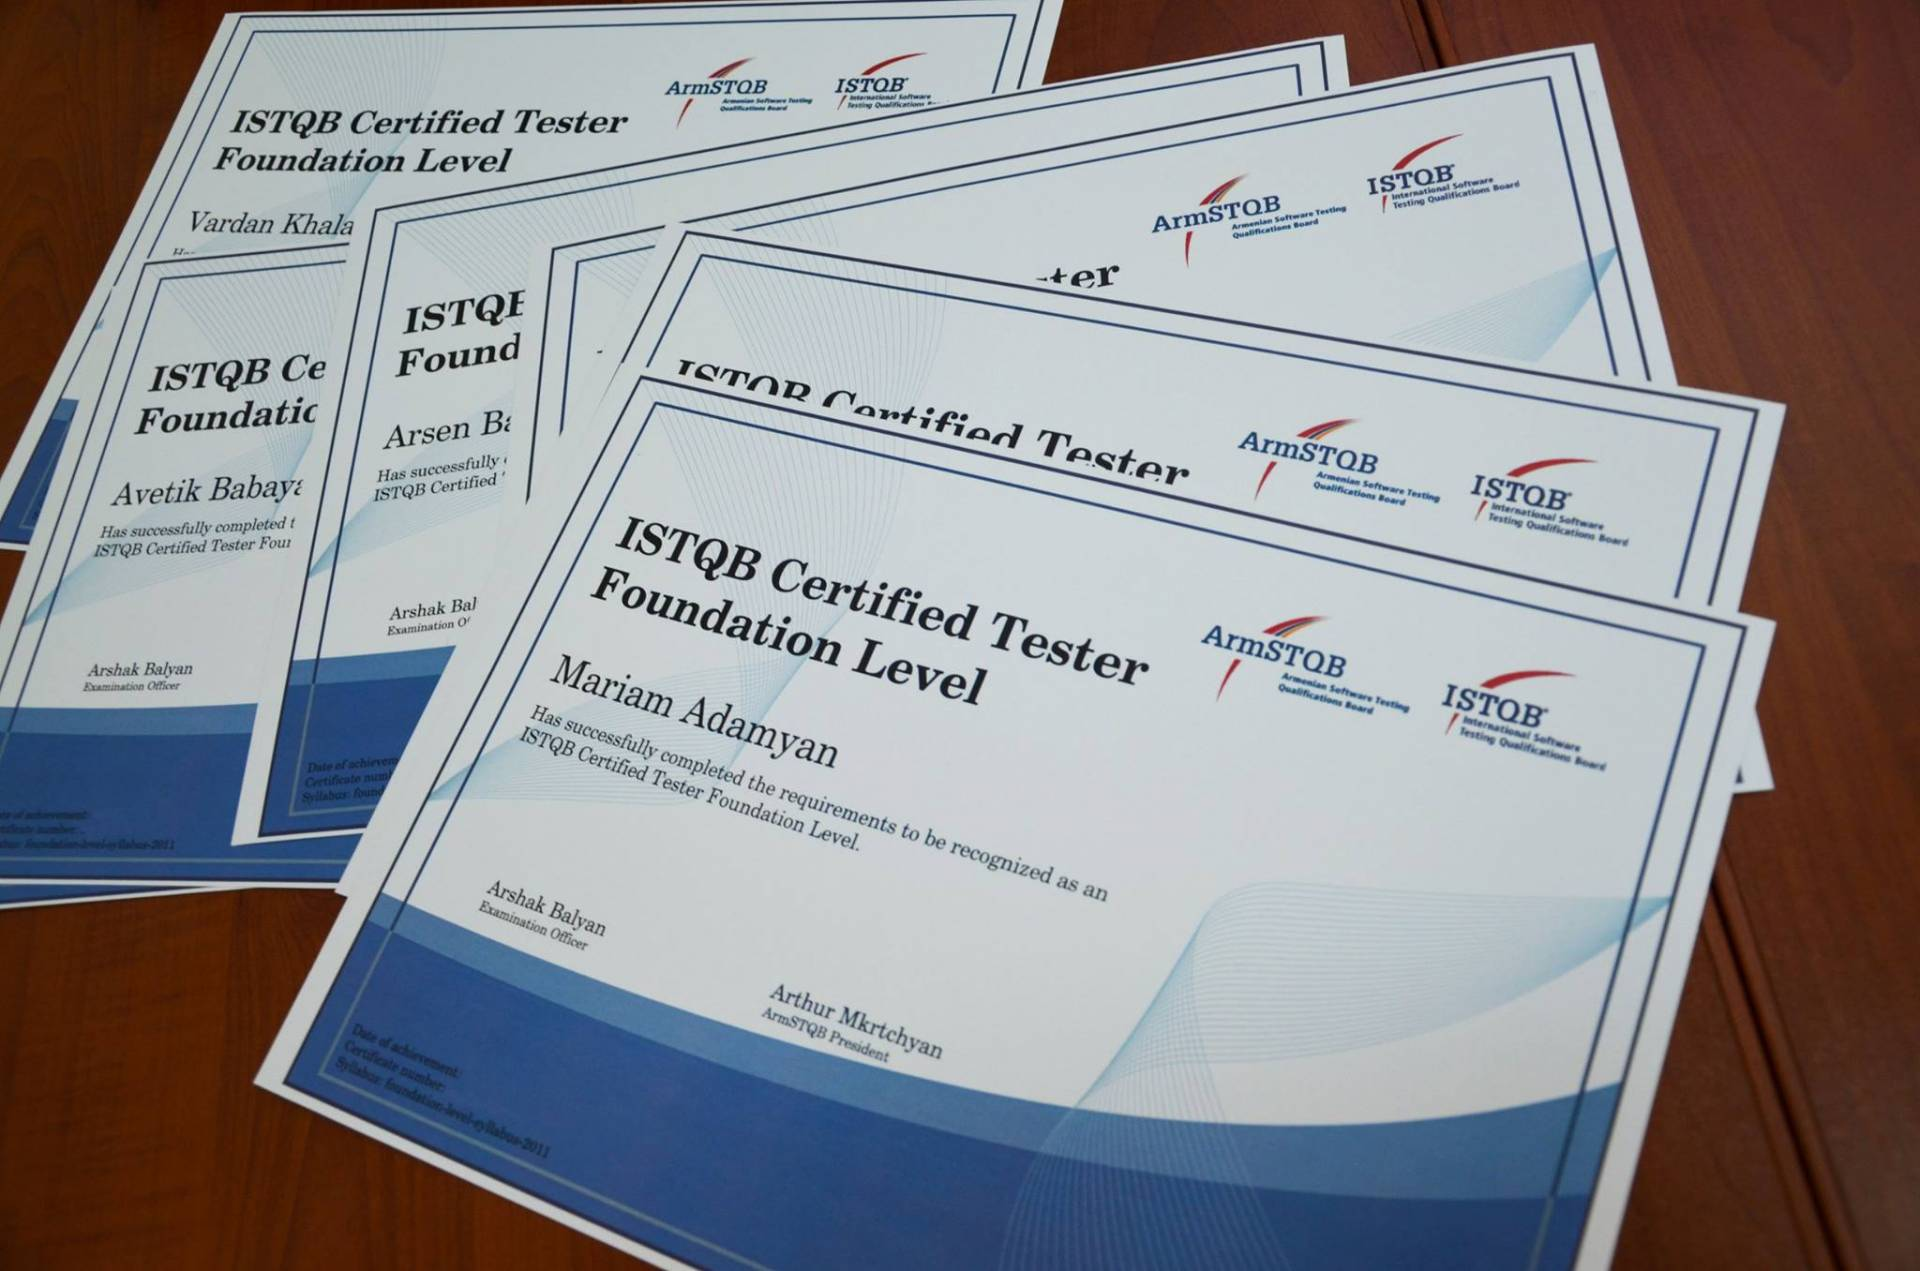 Armstqb armenian software testing qualifications board armstqb istqb foundation level certificates giving ceremony xflitez Images